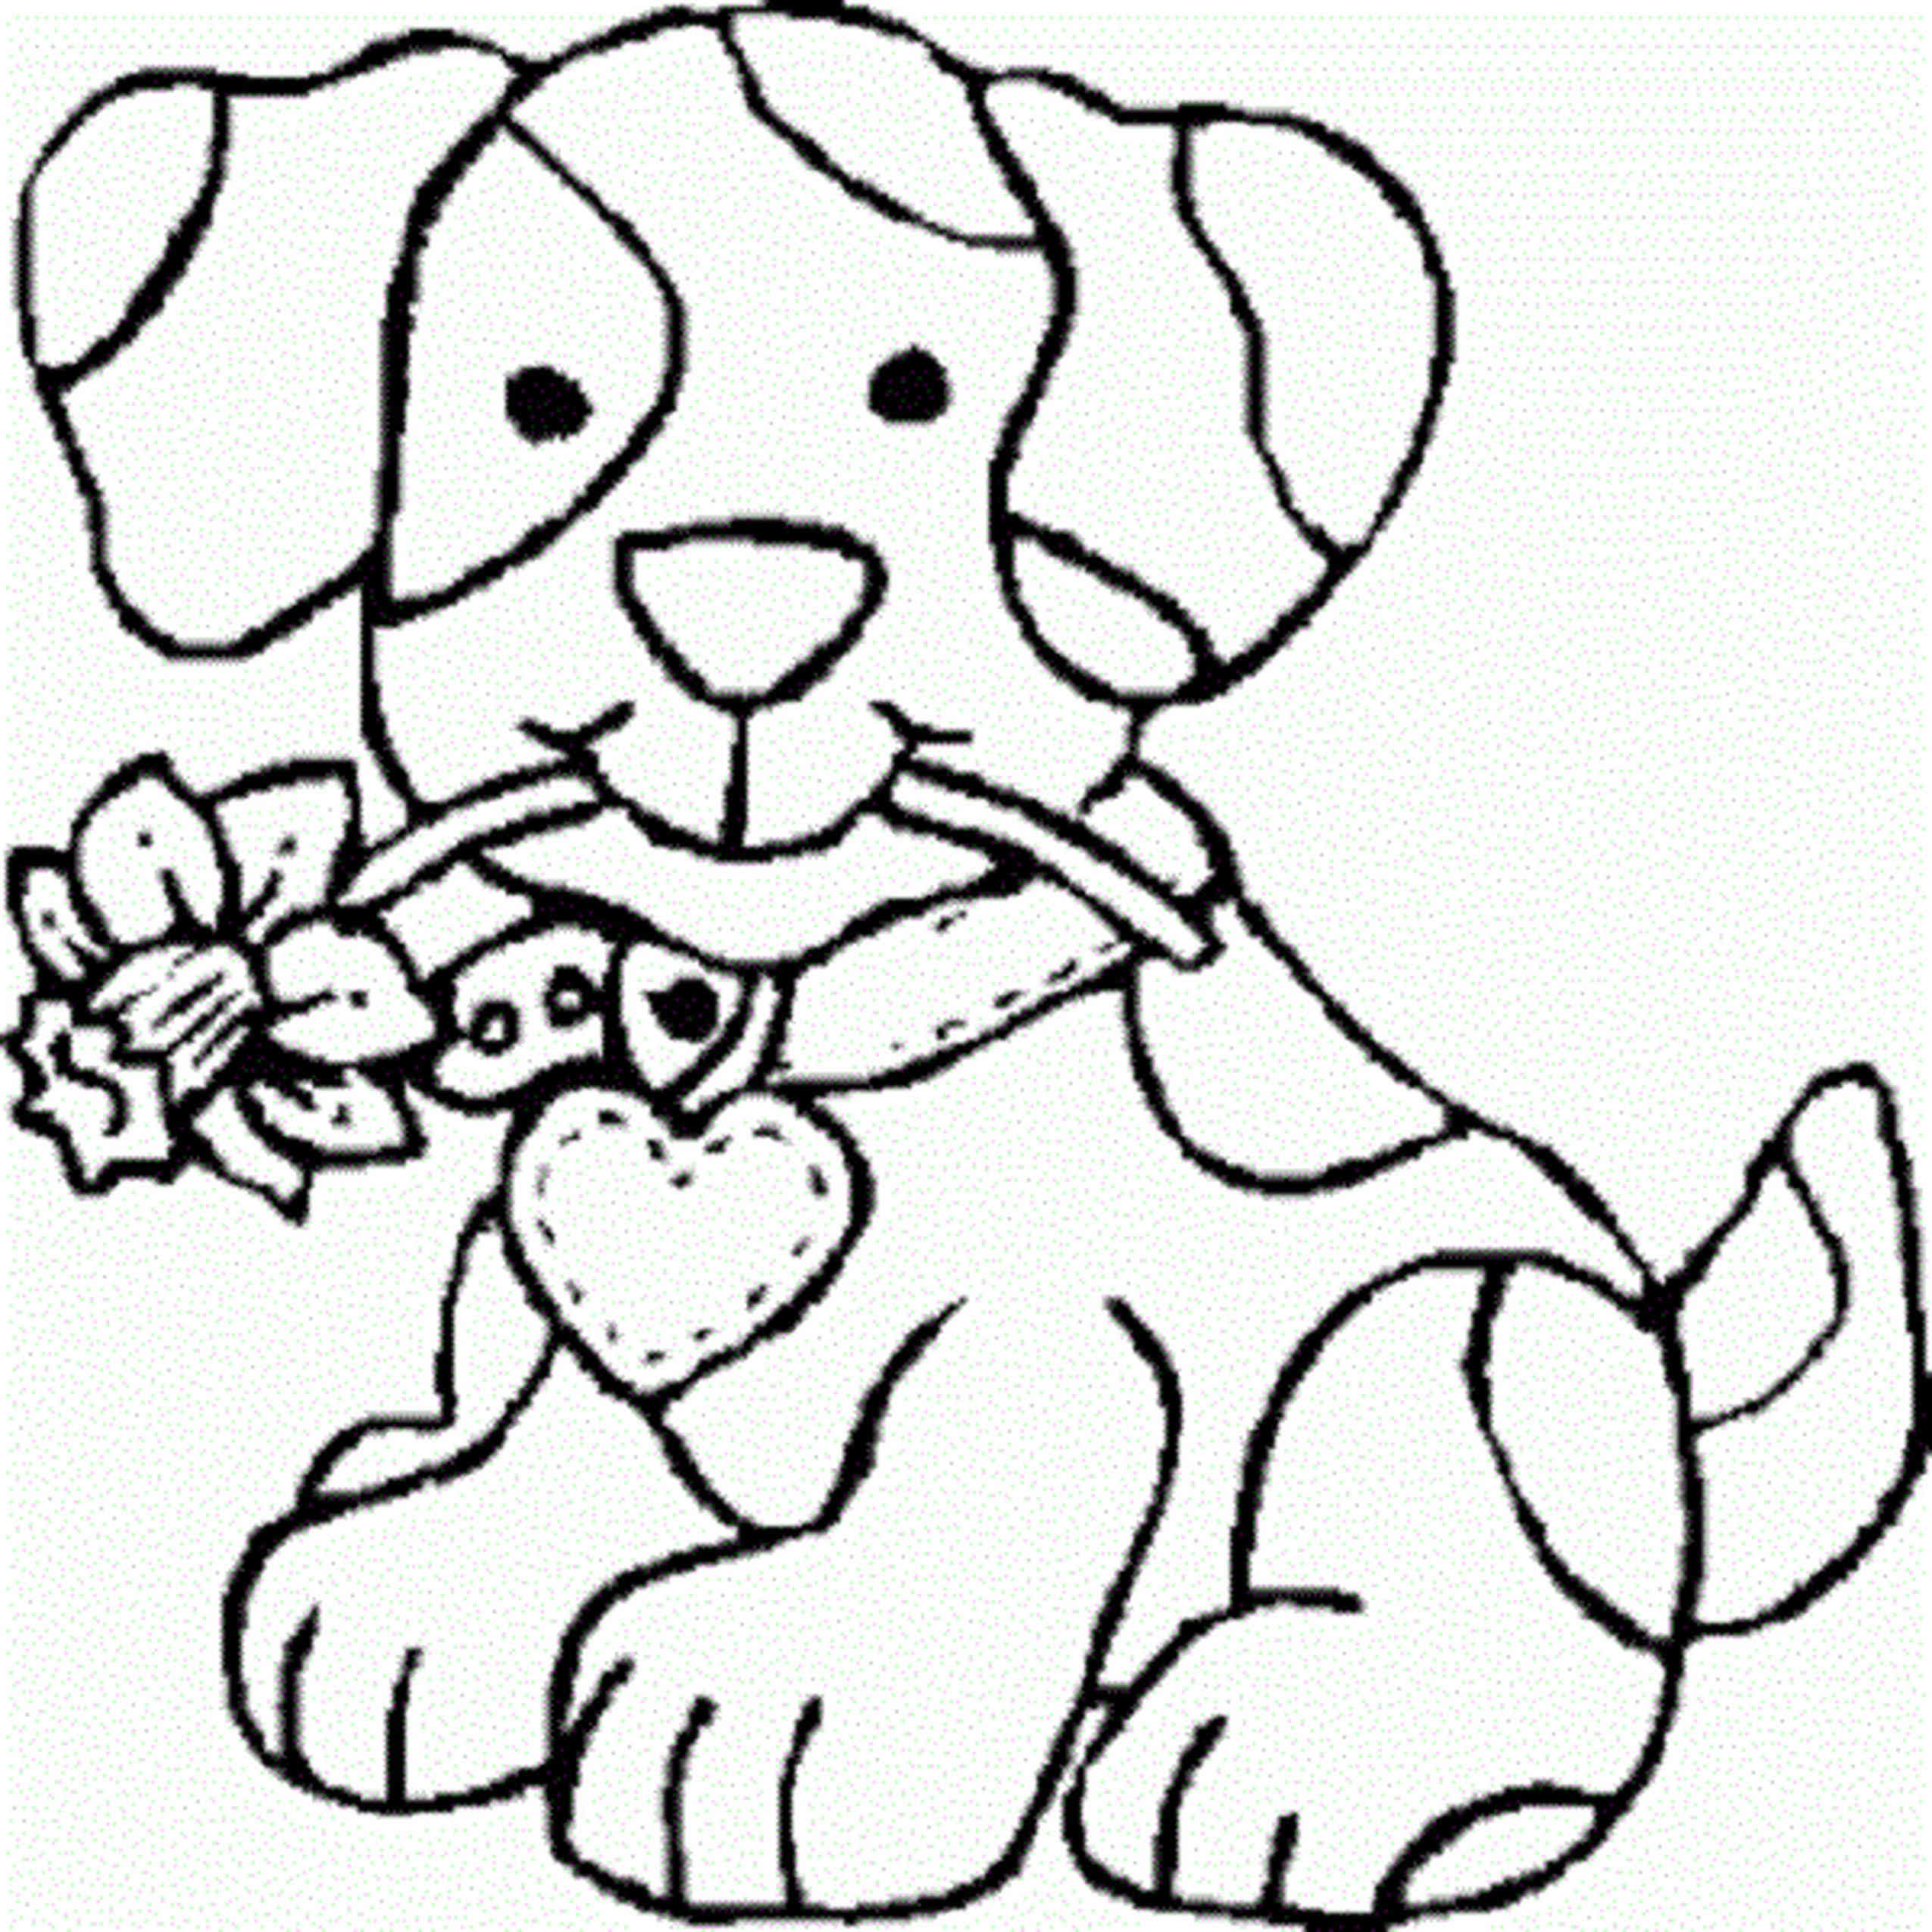 Coloring Pages For Teens | Free download on ClipArtMag